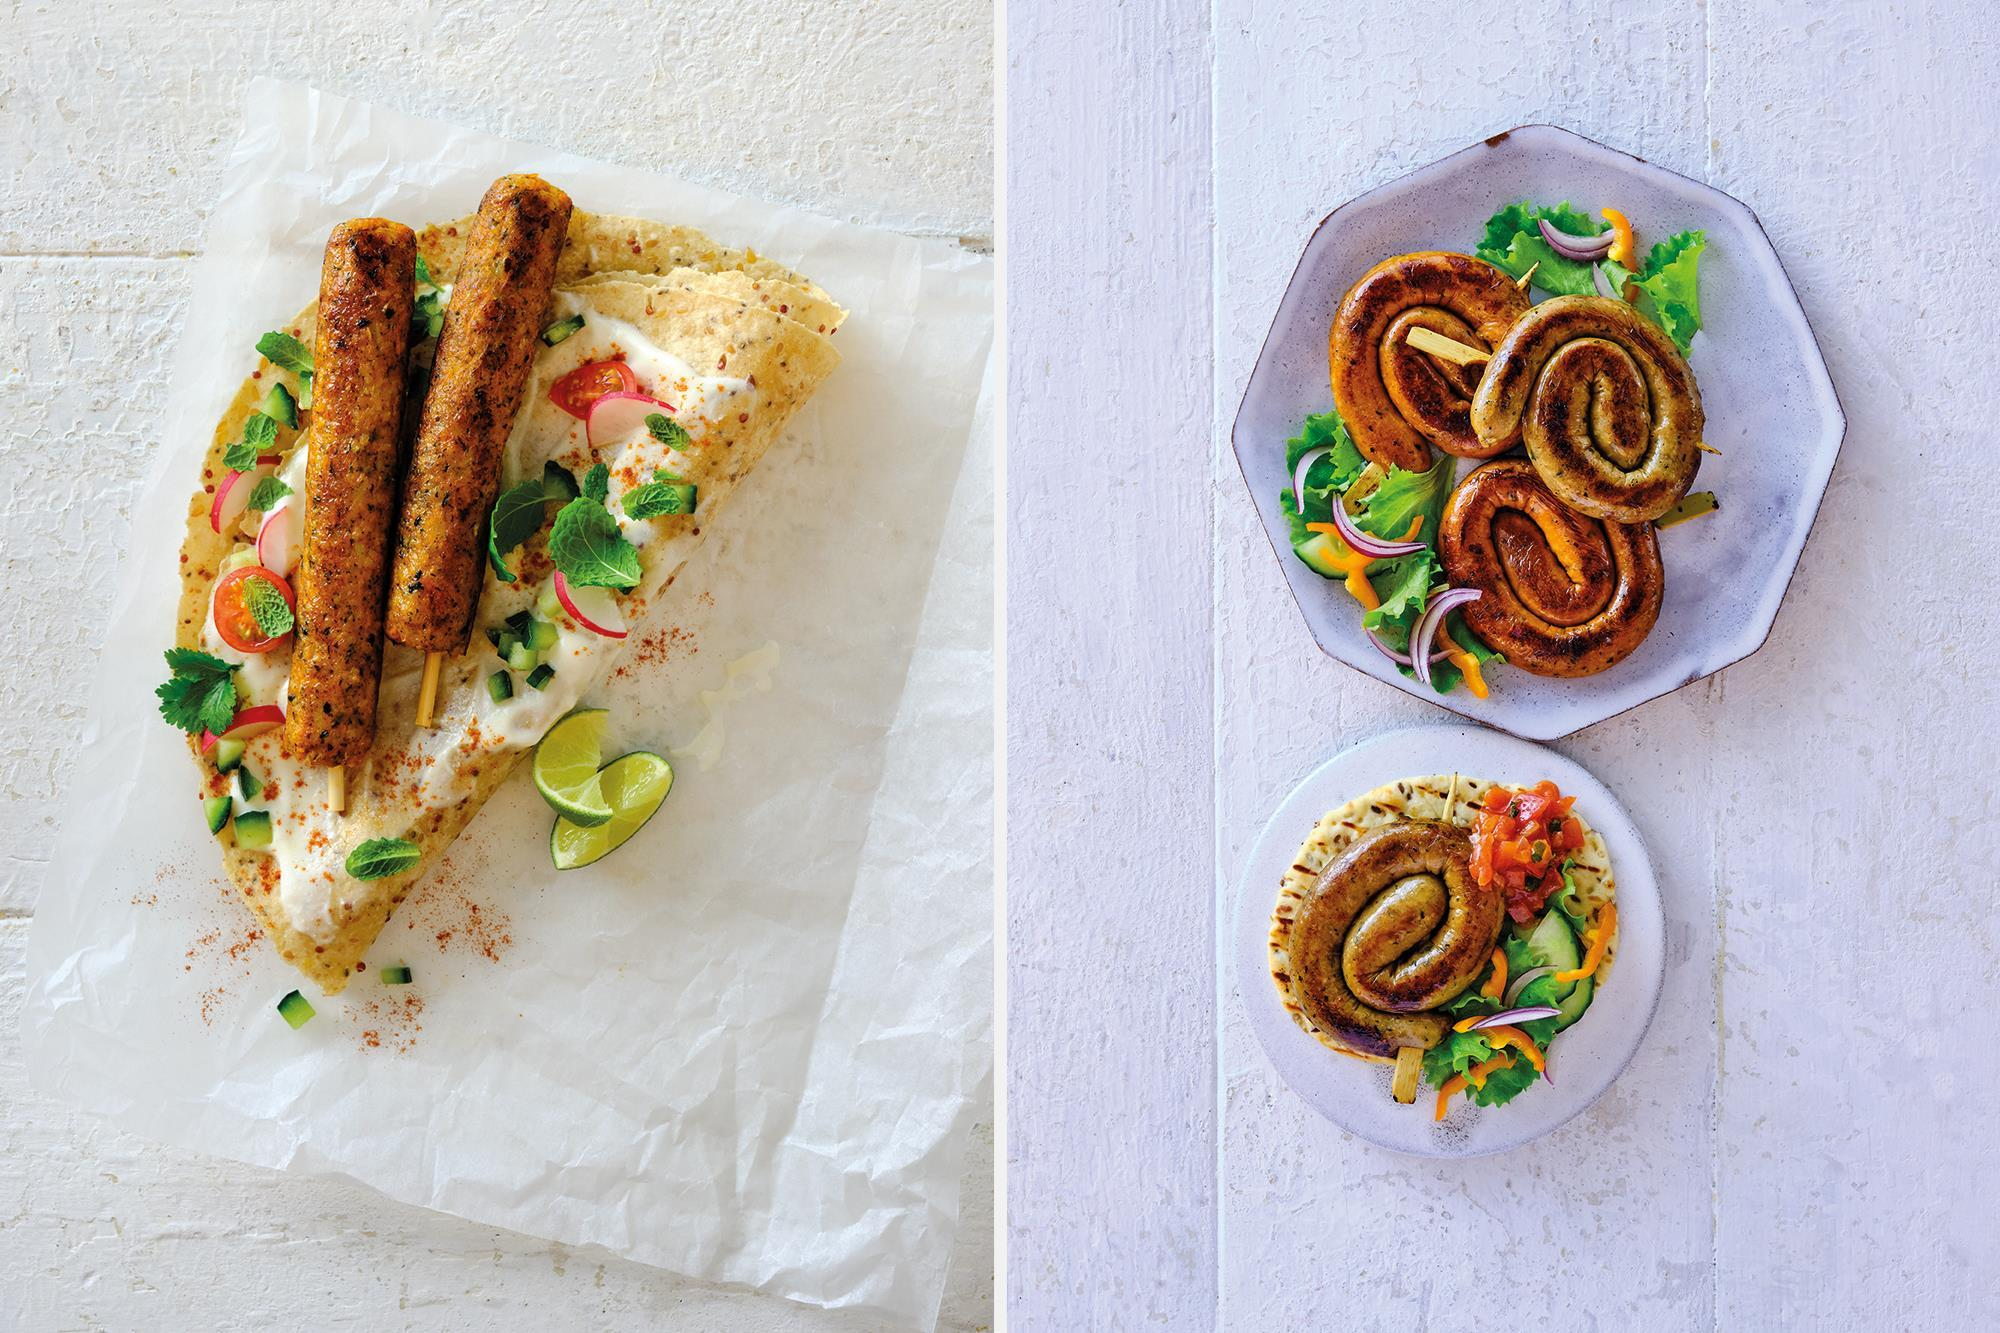 Waitrose launches vegan barbecue lines   News   The Grocer